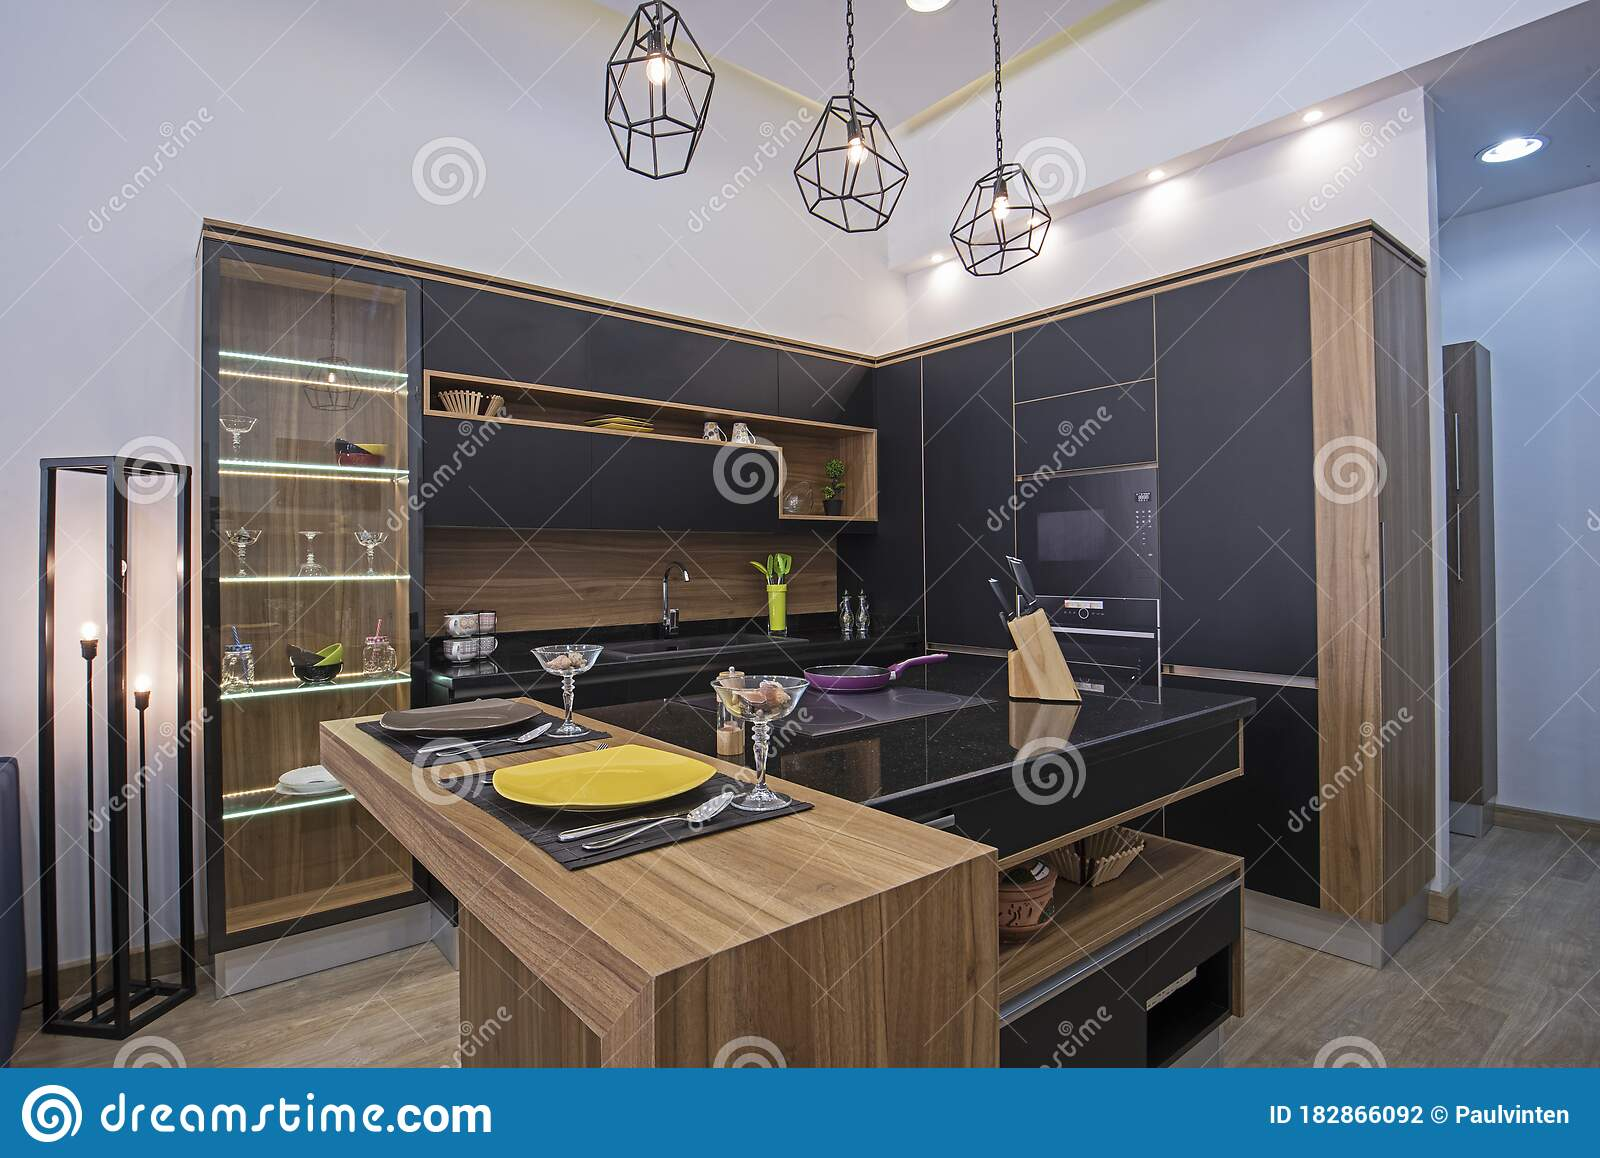 Modern Kitchen Design In A Luxury Apartment Stock Photo Image Of Brown Breakfast 182866092